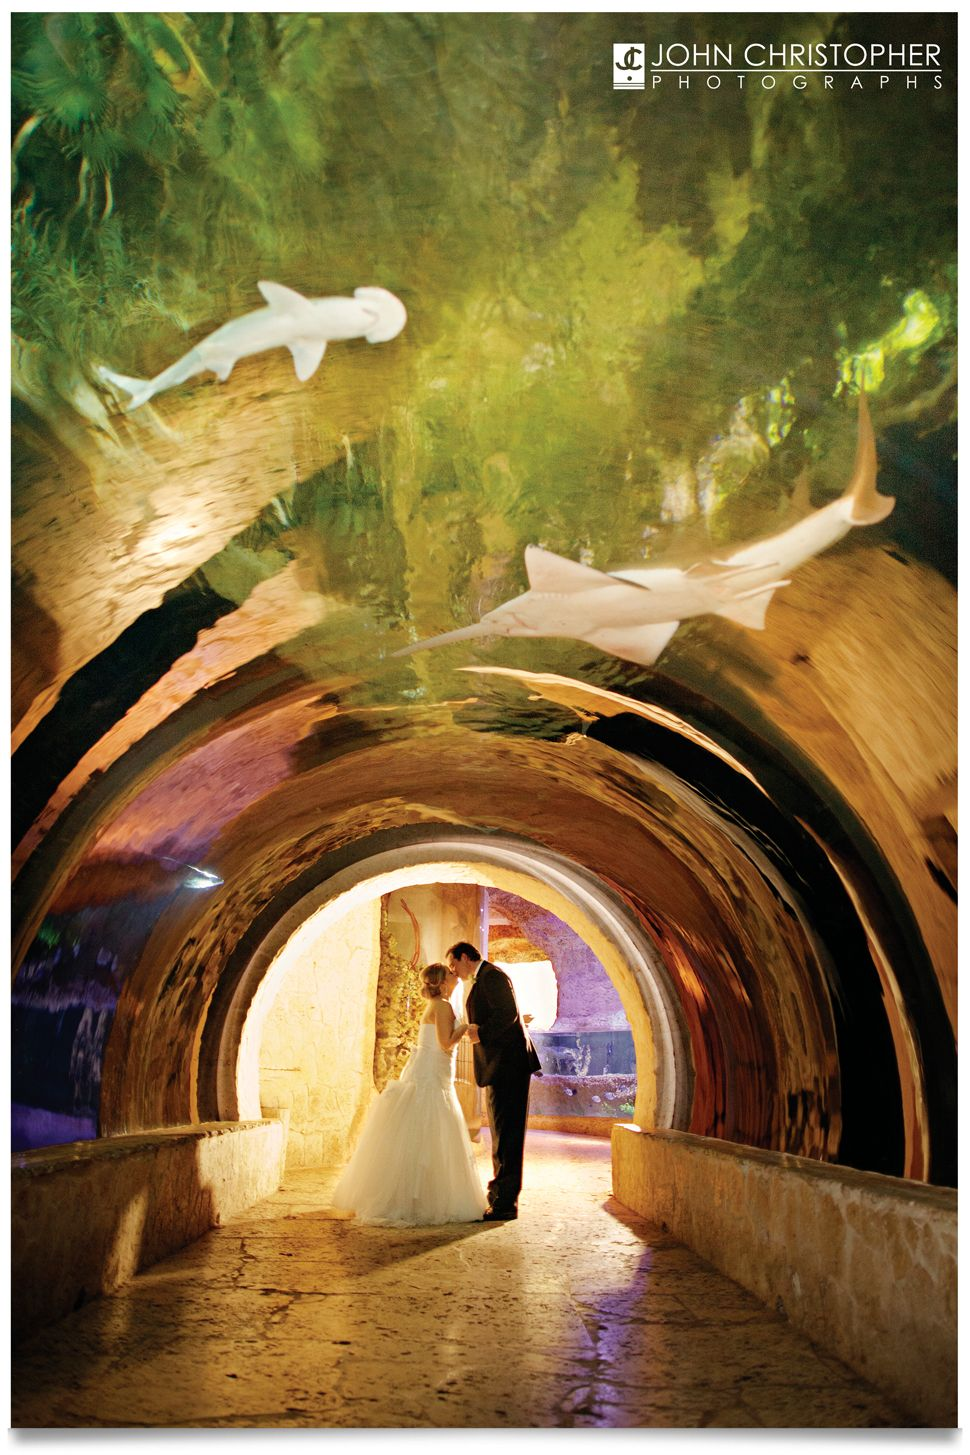 Dallas World Aquarium Wedding Tx Photos John Christopher Photographs Texas Photographer Dallasworldaquarium